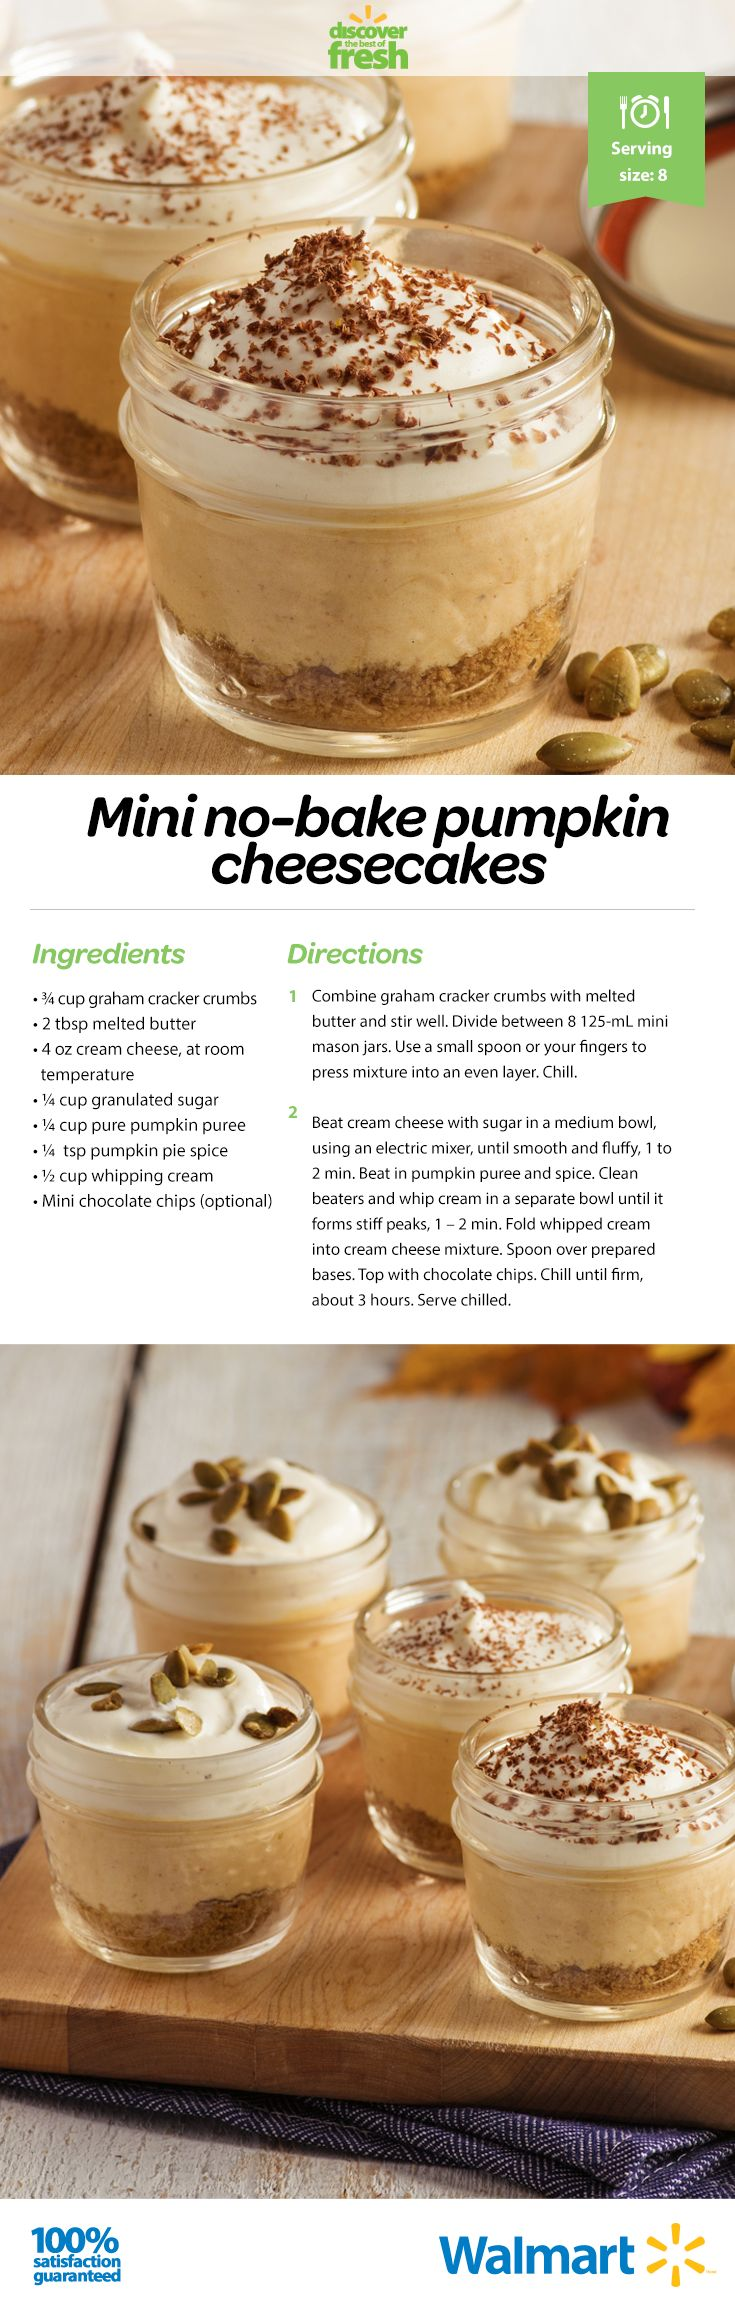 Thanksgiving flavours all wrapped up in a no-bake pumpkin cheesecake recipe. #thanksgivingrecipes